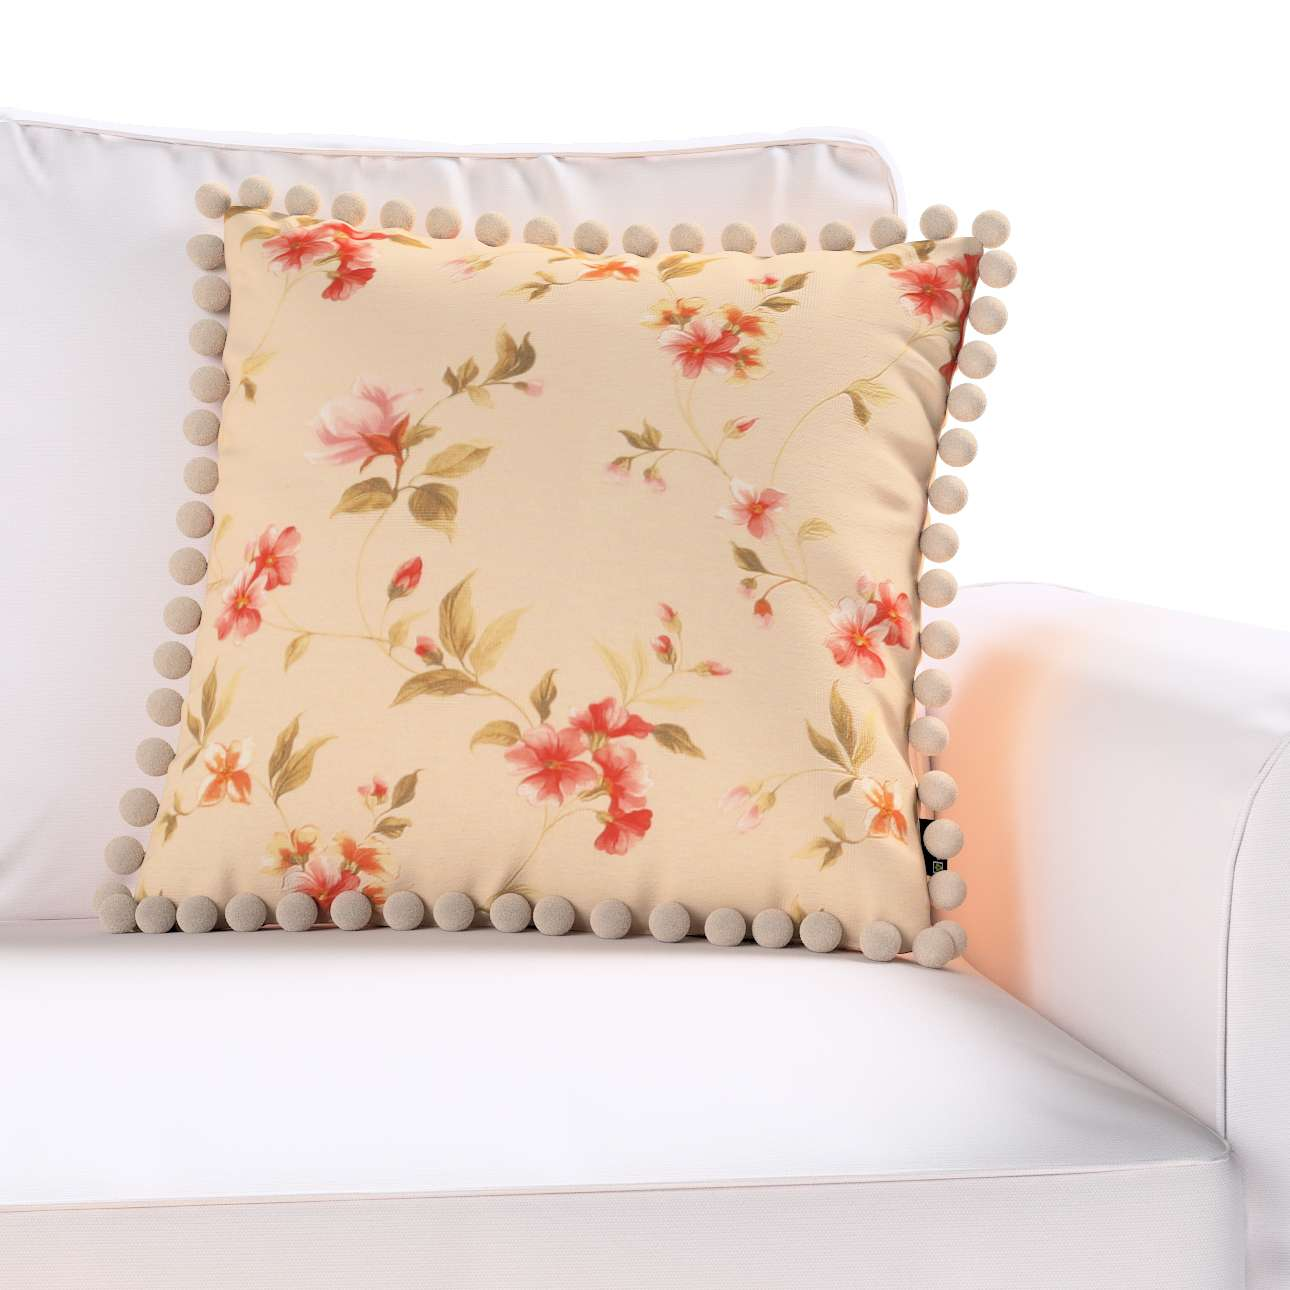 Wera cushion cover with pompons 45 x 45 cm (18 x 18 inch) in collection Londres, fabric: 124-05